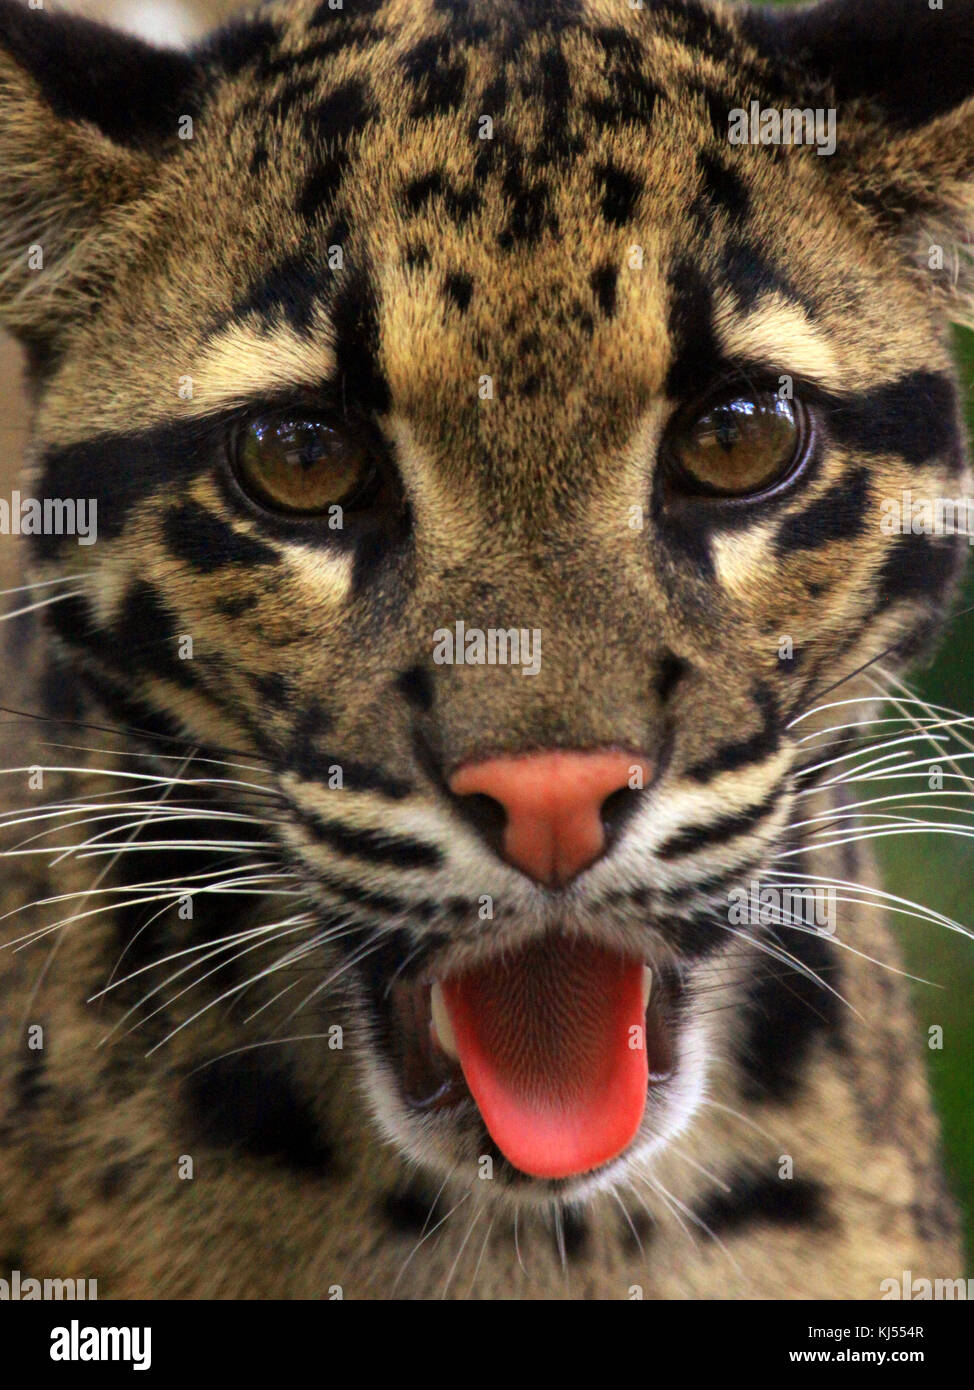 A tounge wagging portrait of a Clouded Leopard. - Stock Image